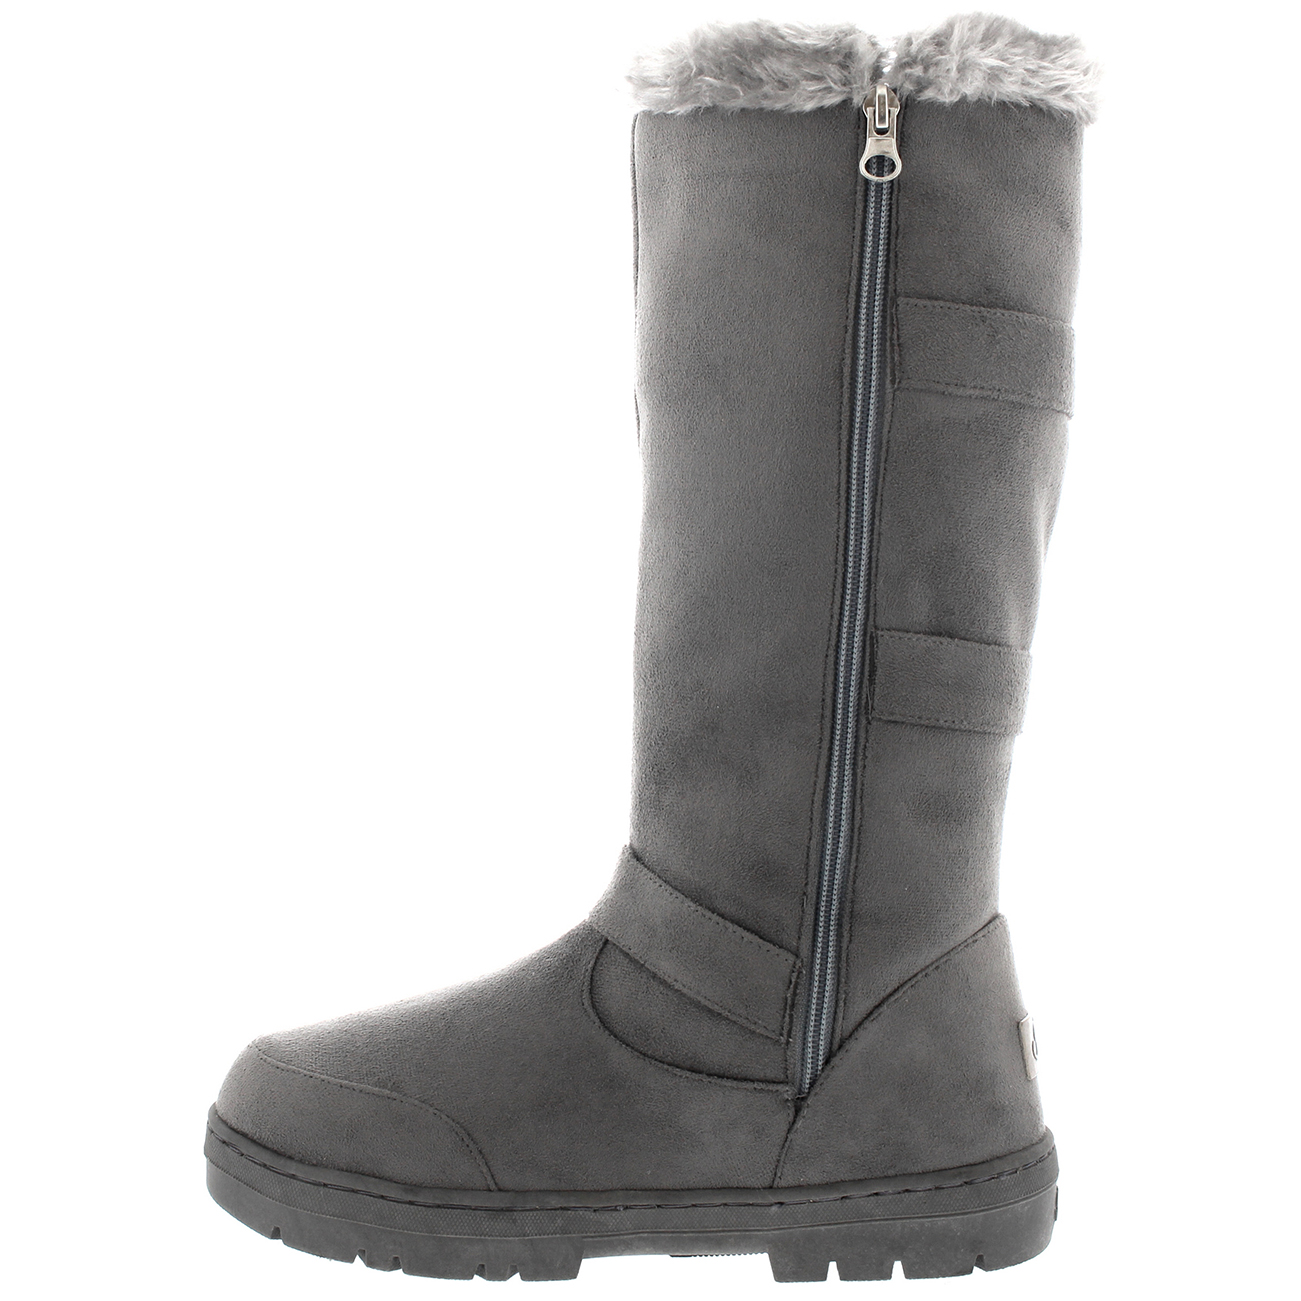 grey knee high boots uk